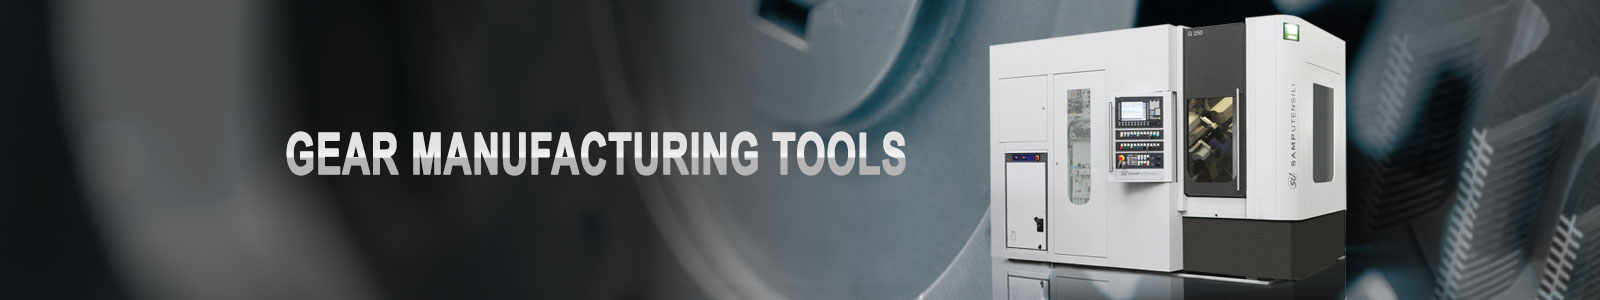 Star SU Gear Manufacturing Tools